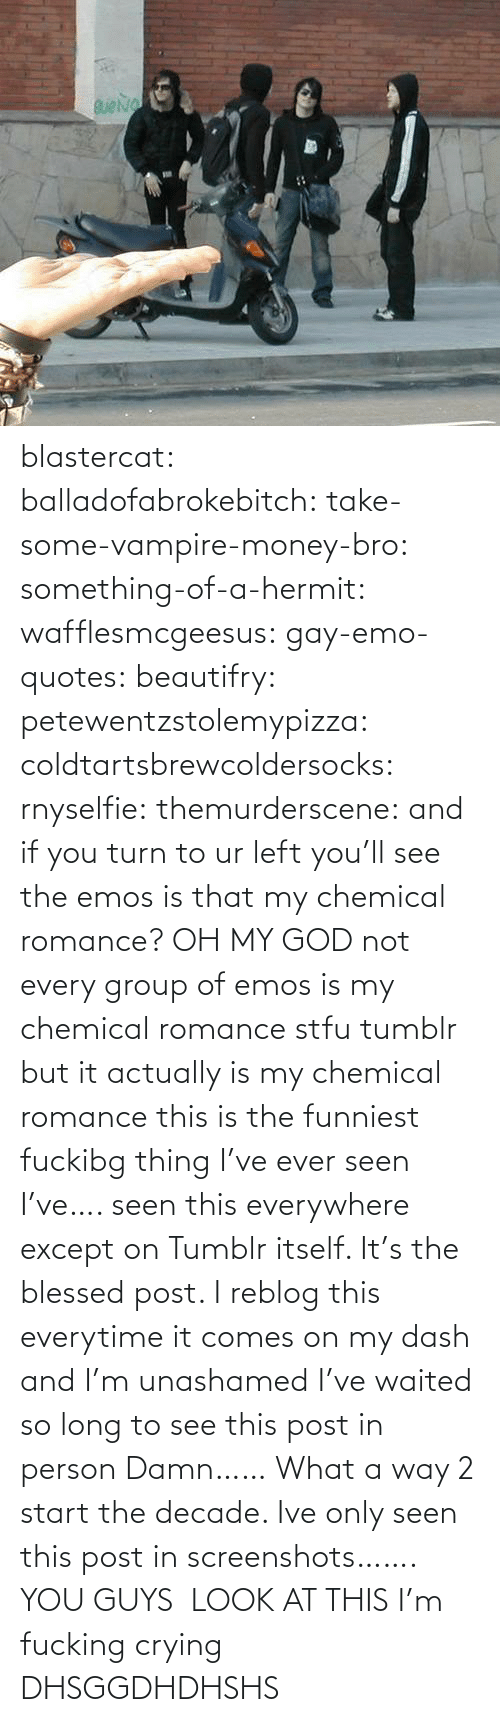 Actually: blastercat: balladofabrokebitch:  take-some-vampire-money-bro:  something-of-a-hermit:   wafflesmcgeesus:  gay-emo-quotes:  beautifry:  petewentzstolemypizza:  coldtartsbrewcoldersocks:  rnyselfie:  themurderscene:  and if you turn to ur left you'll see the emos  is that my chemical romance?  OH MY GOD not every group of emos is my chemical romance stfu tumblr  but it actually is my chemical romance  this is the funniest fuckibg thing I've ever seen   I've…. seen this everywhere except on Tumblr itself. It's the blessed post.    I reblog this everytime it comes on my dash and I'm unashamed  I've waited so long to see this post in person     Damn…… What a way 2 start the decade. Ive only seen this post in screenshots…….  YOU GUYS  LOOK AT THIS I'm fucking crying     DHSGGDHDHSHS